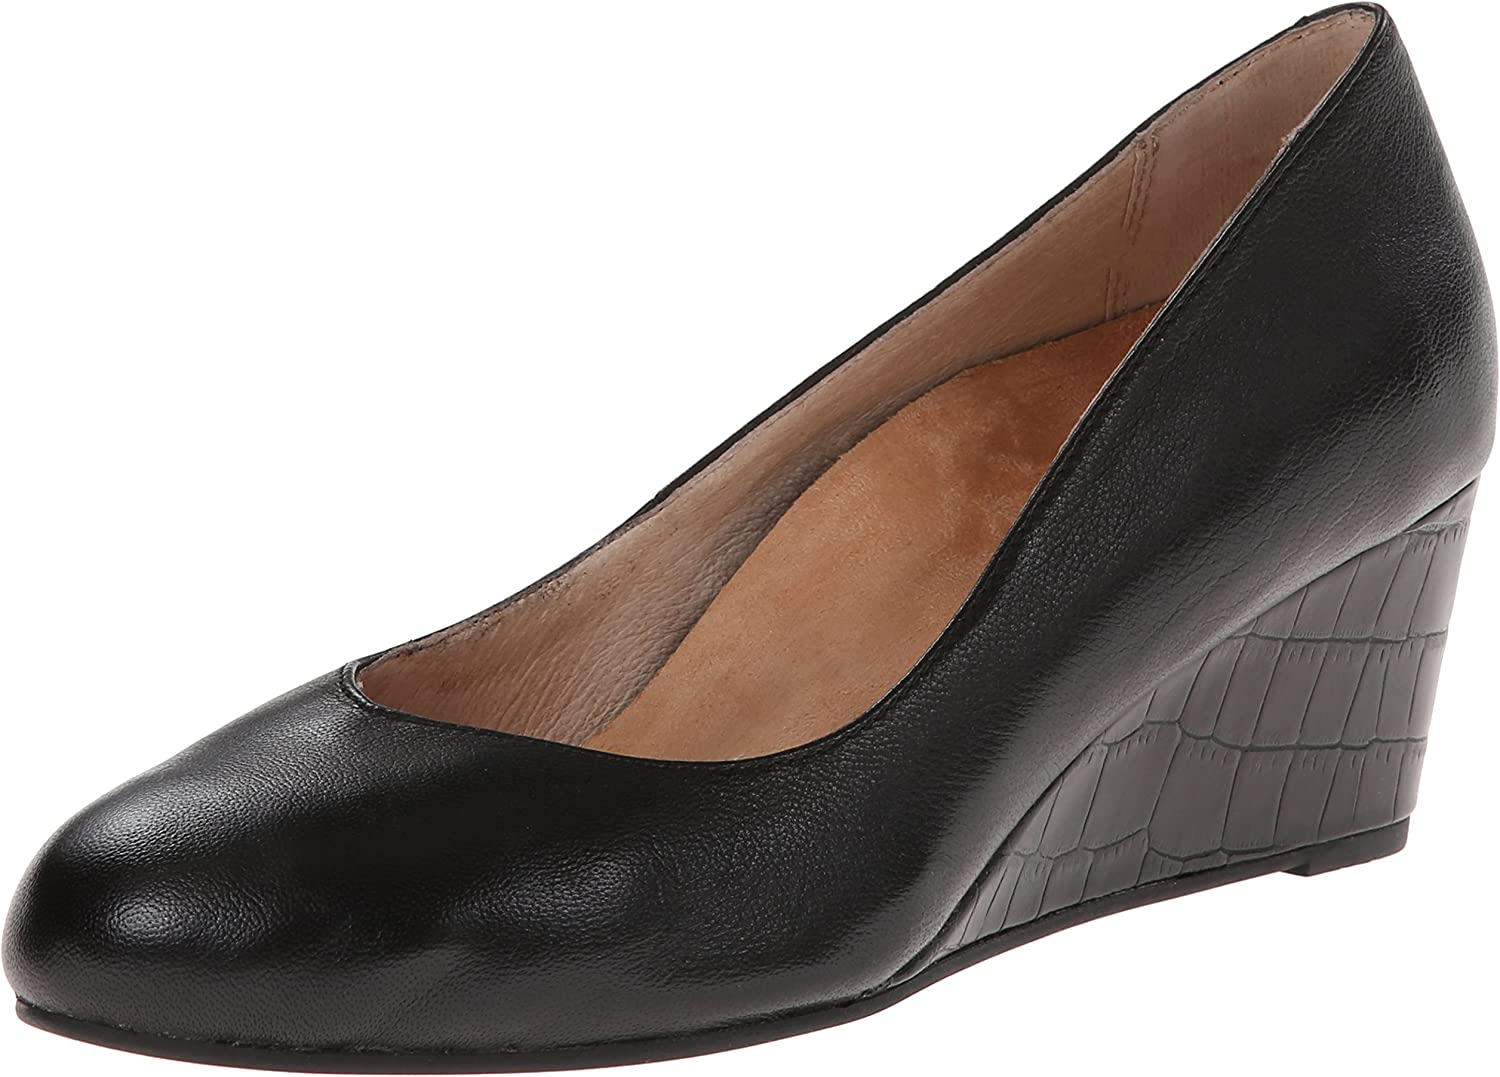 Orthaheel Women's Vionic, Antonia Mid Heel Wedge Pumps